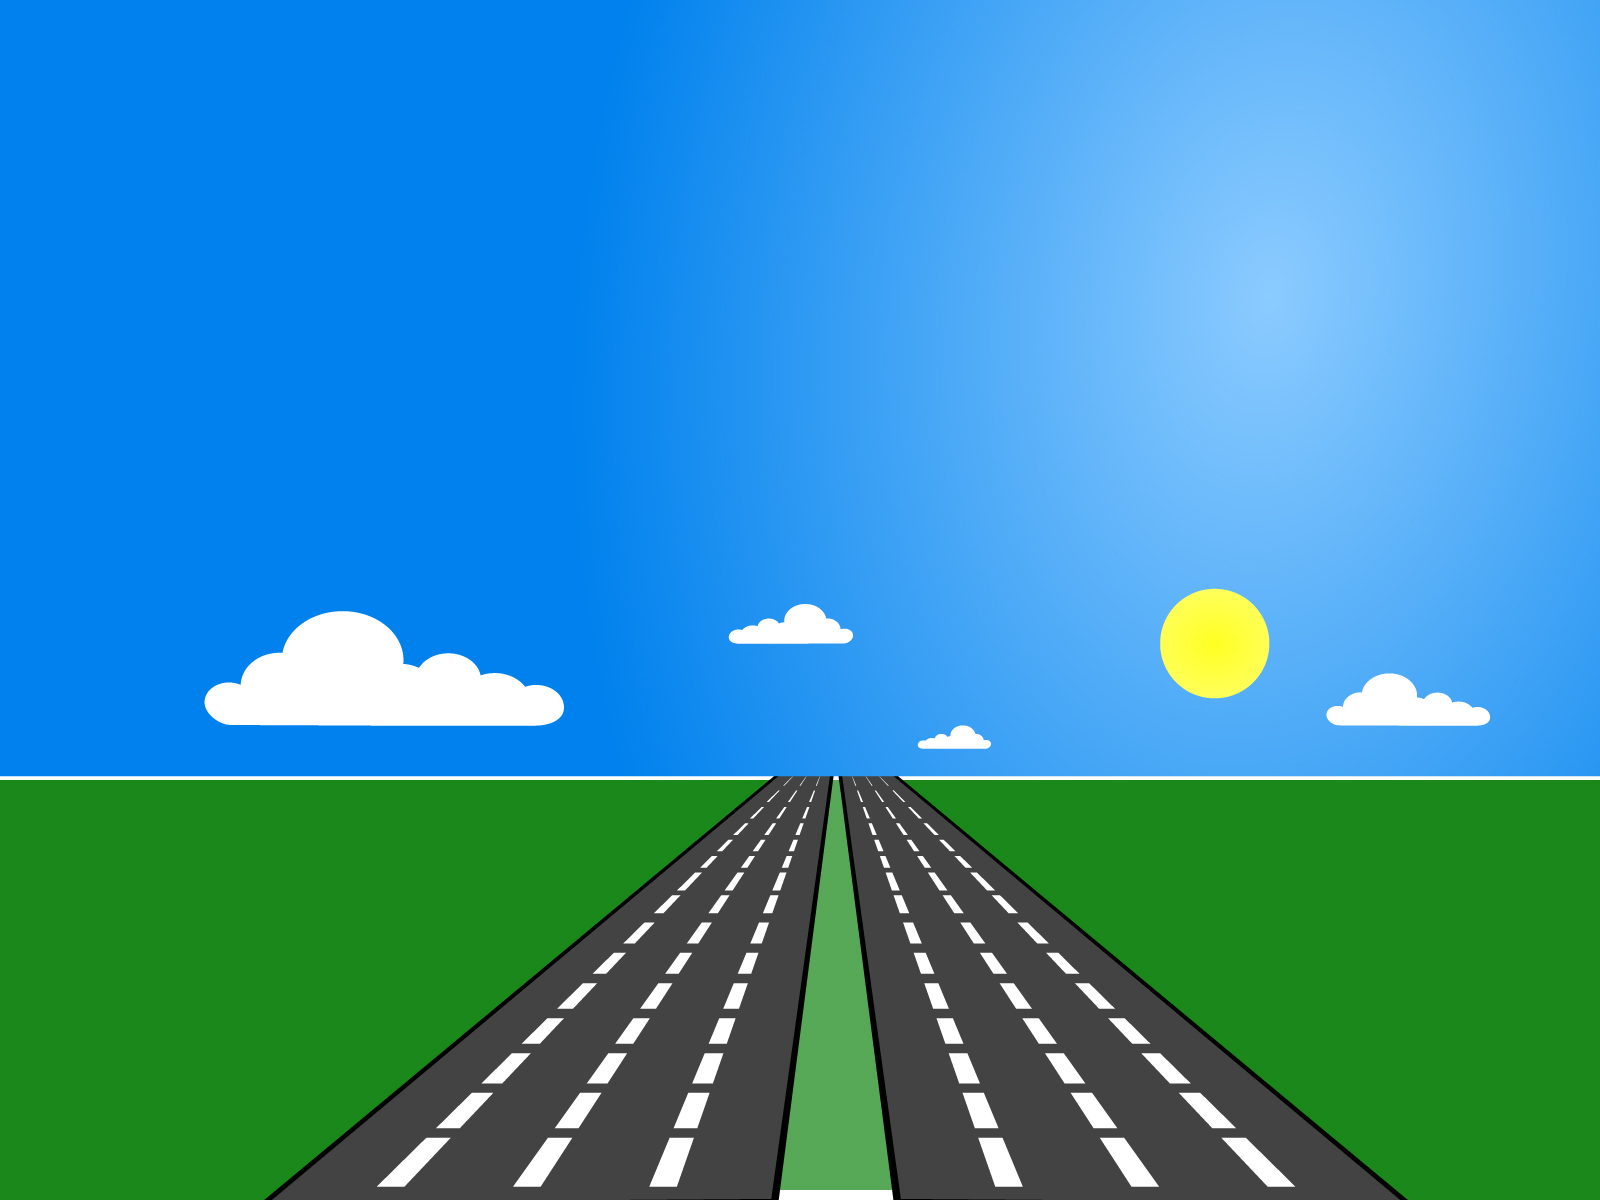 Road Transportation Ppt Backgrounds Blue Green